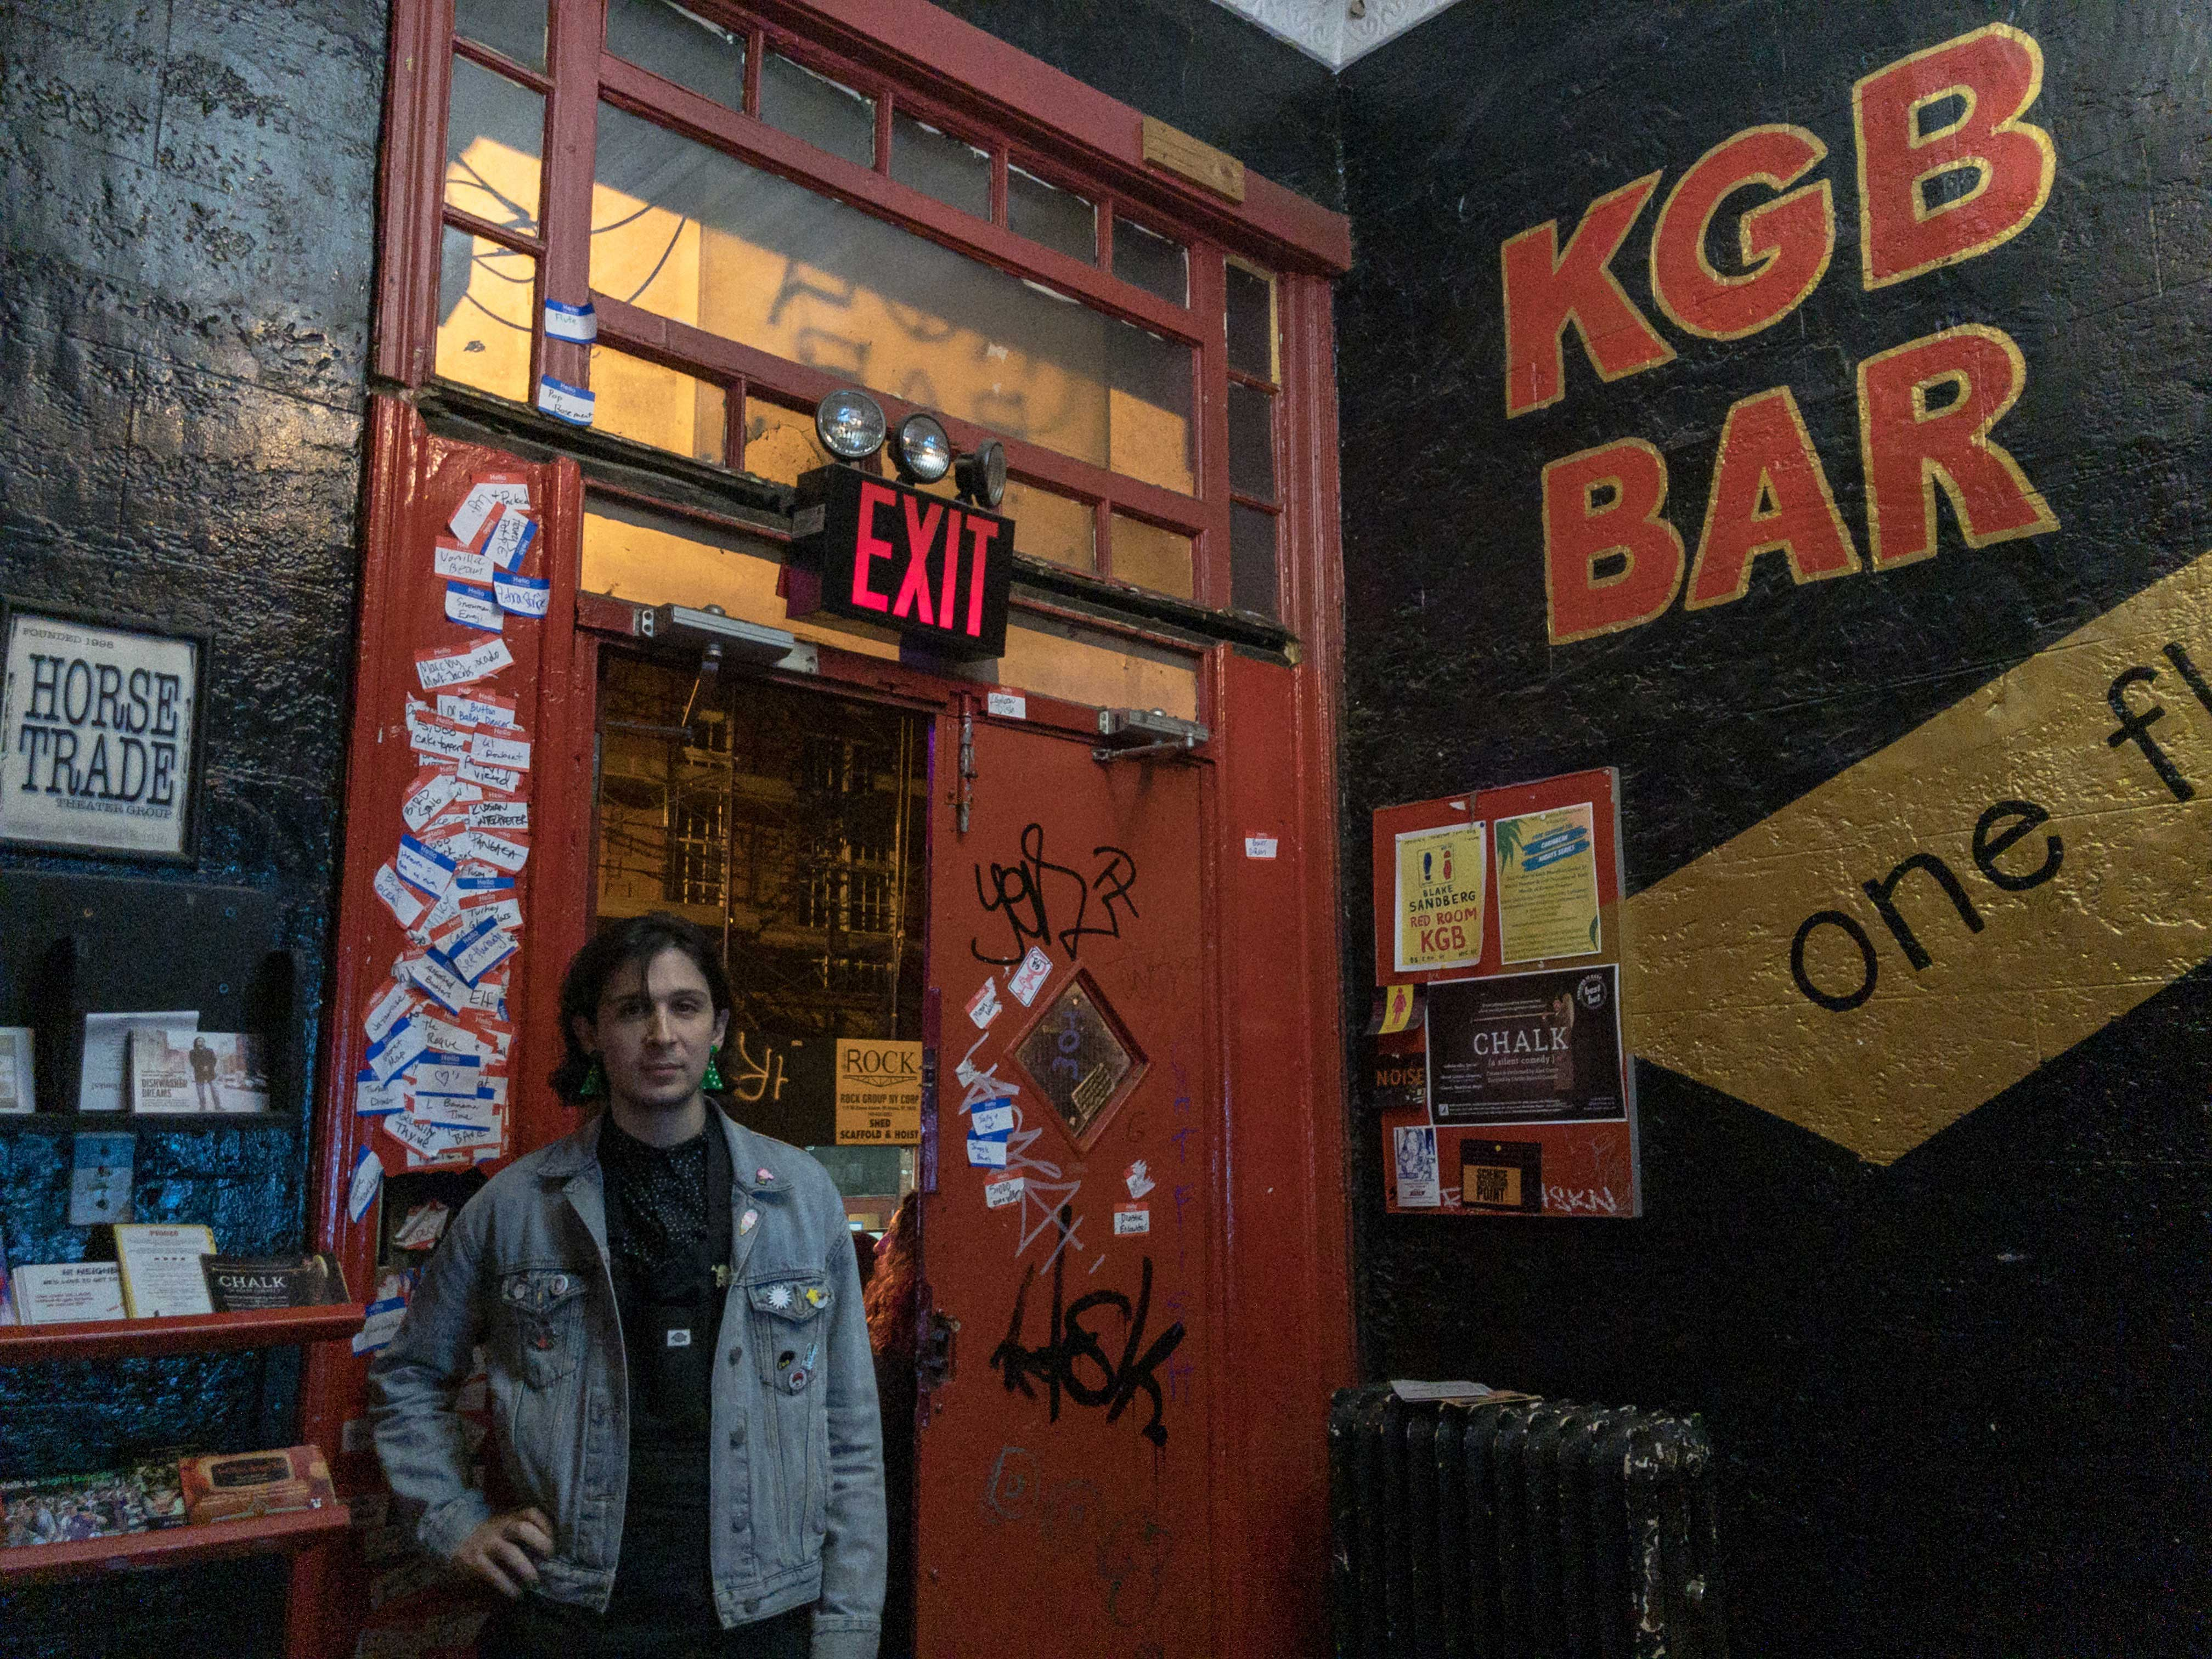 "The lobby of a building, painted black, facing the street exit. One wall is labeled ""KGB BAR"" in large red letters. The front door is bright red, with dozens of name tags stuck to the walls on either side. A person stands next to the exit with a hand on her hip, wearing a denim jacket."